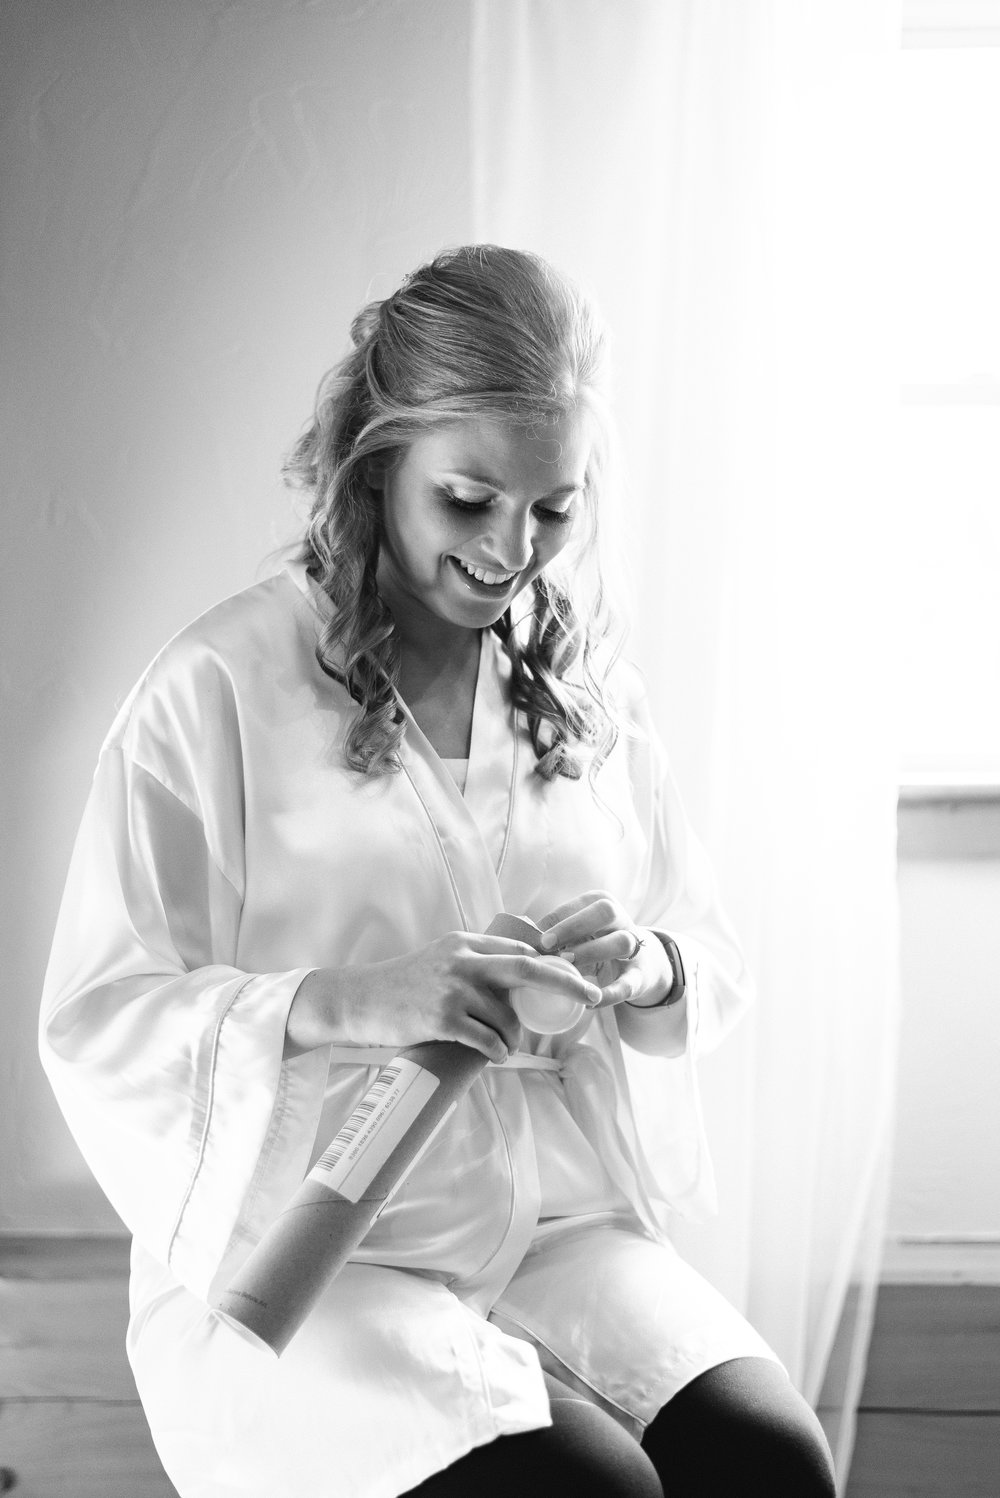 Jessica K Feiden Photography_Anne Marie + Tom's Sneak Peek-3.jpg